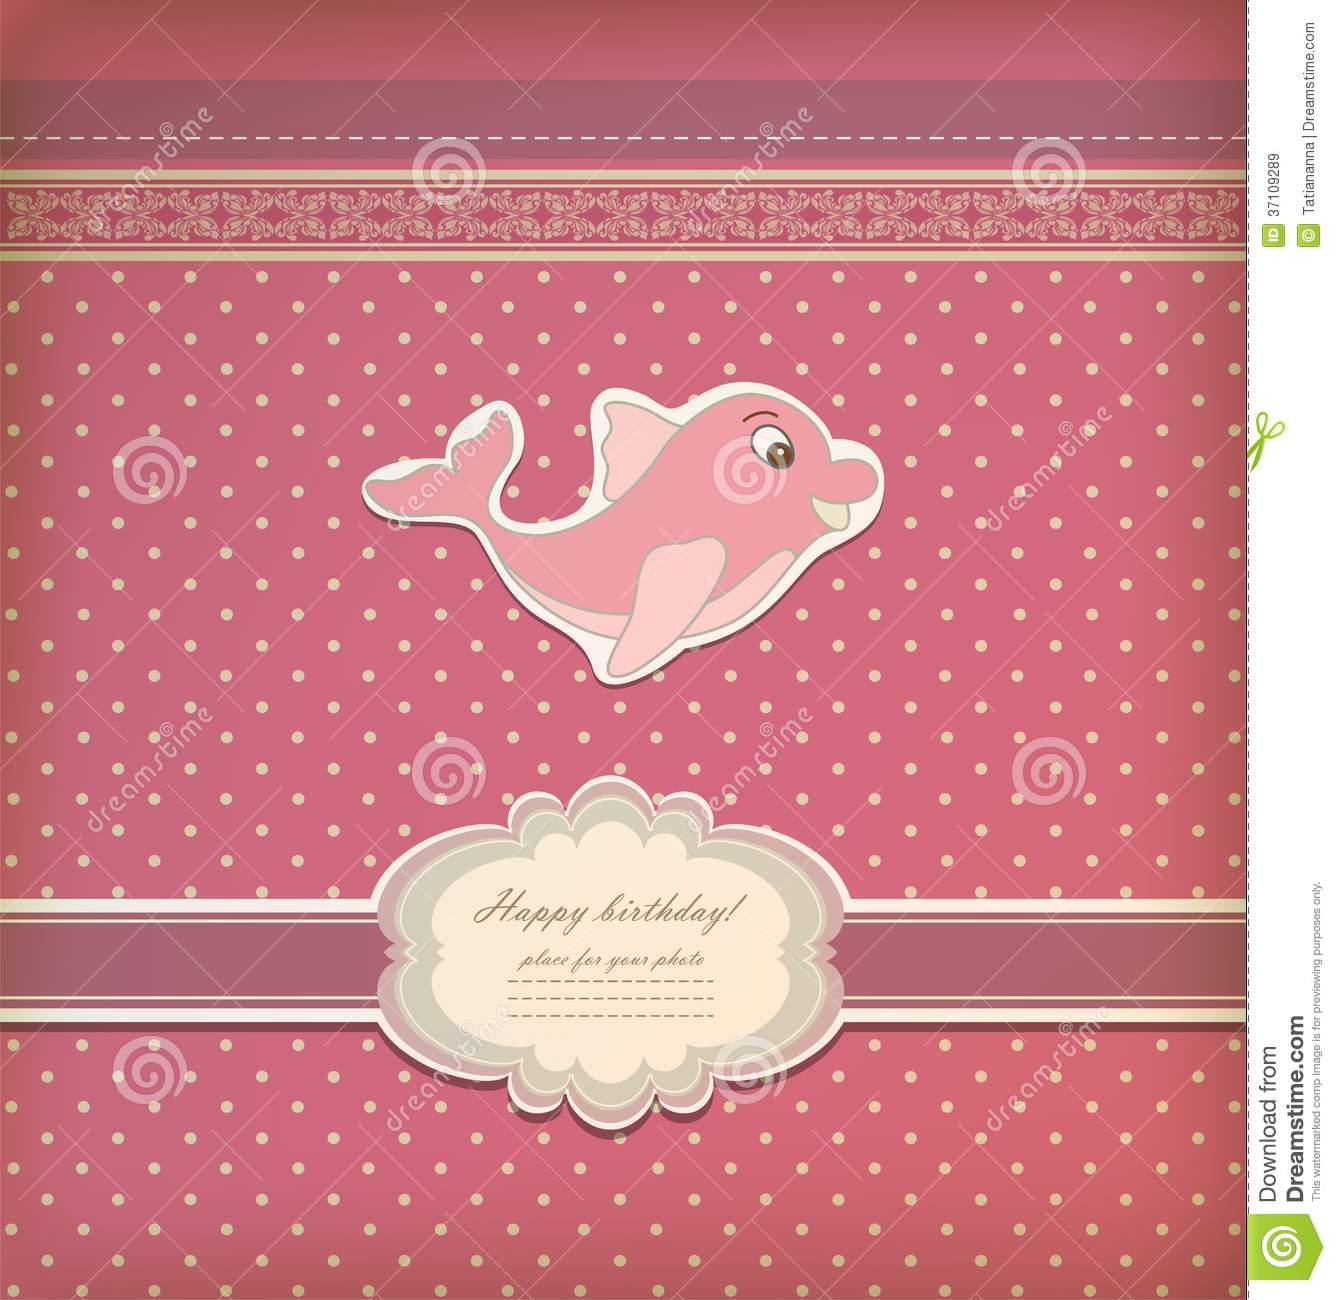 Baby boy arrival card vector by leonart image 600444 vectorstock - Baby Card With Dolphin Toy Vector Wallpaper Gallery Vector Baby Boy Card Royalty Free Stock